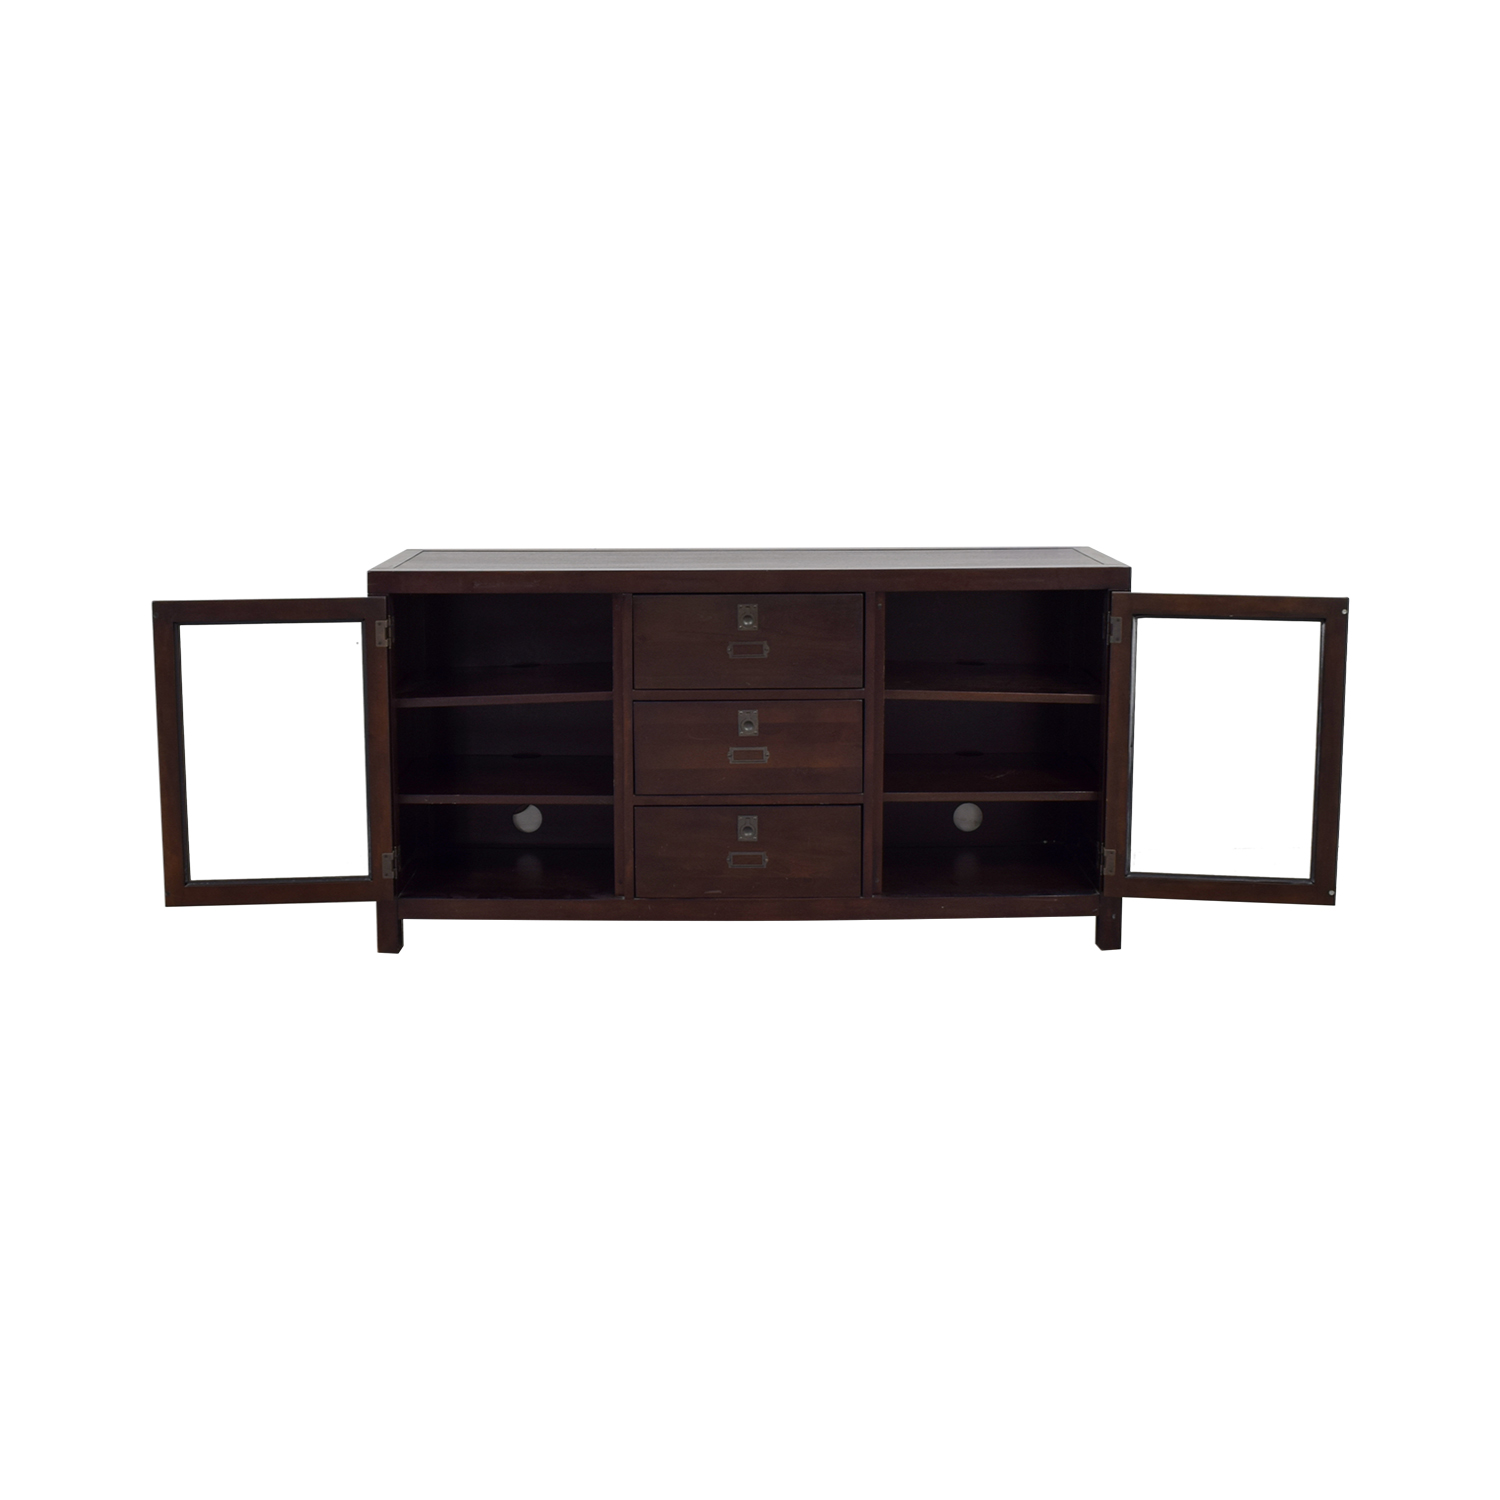 Pottery Barn Pottery Barn Media Console With Glass Curios nyc